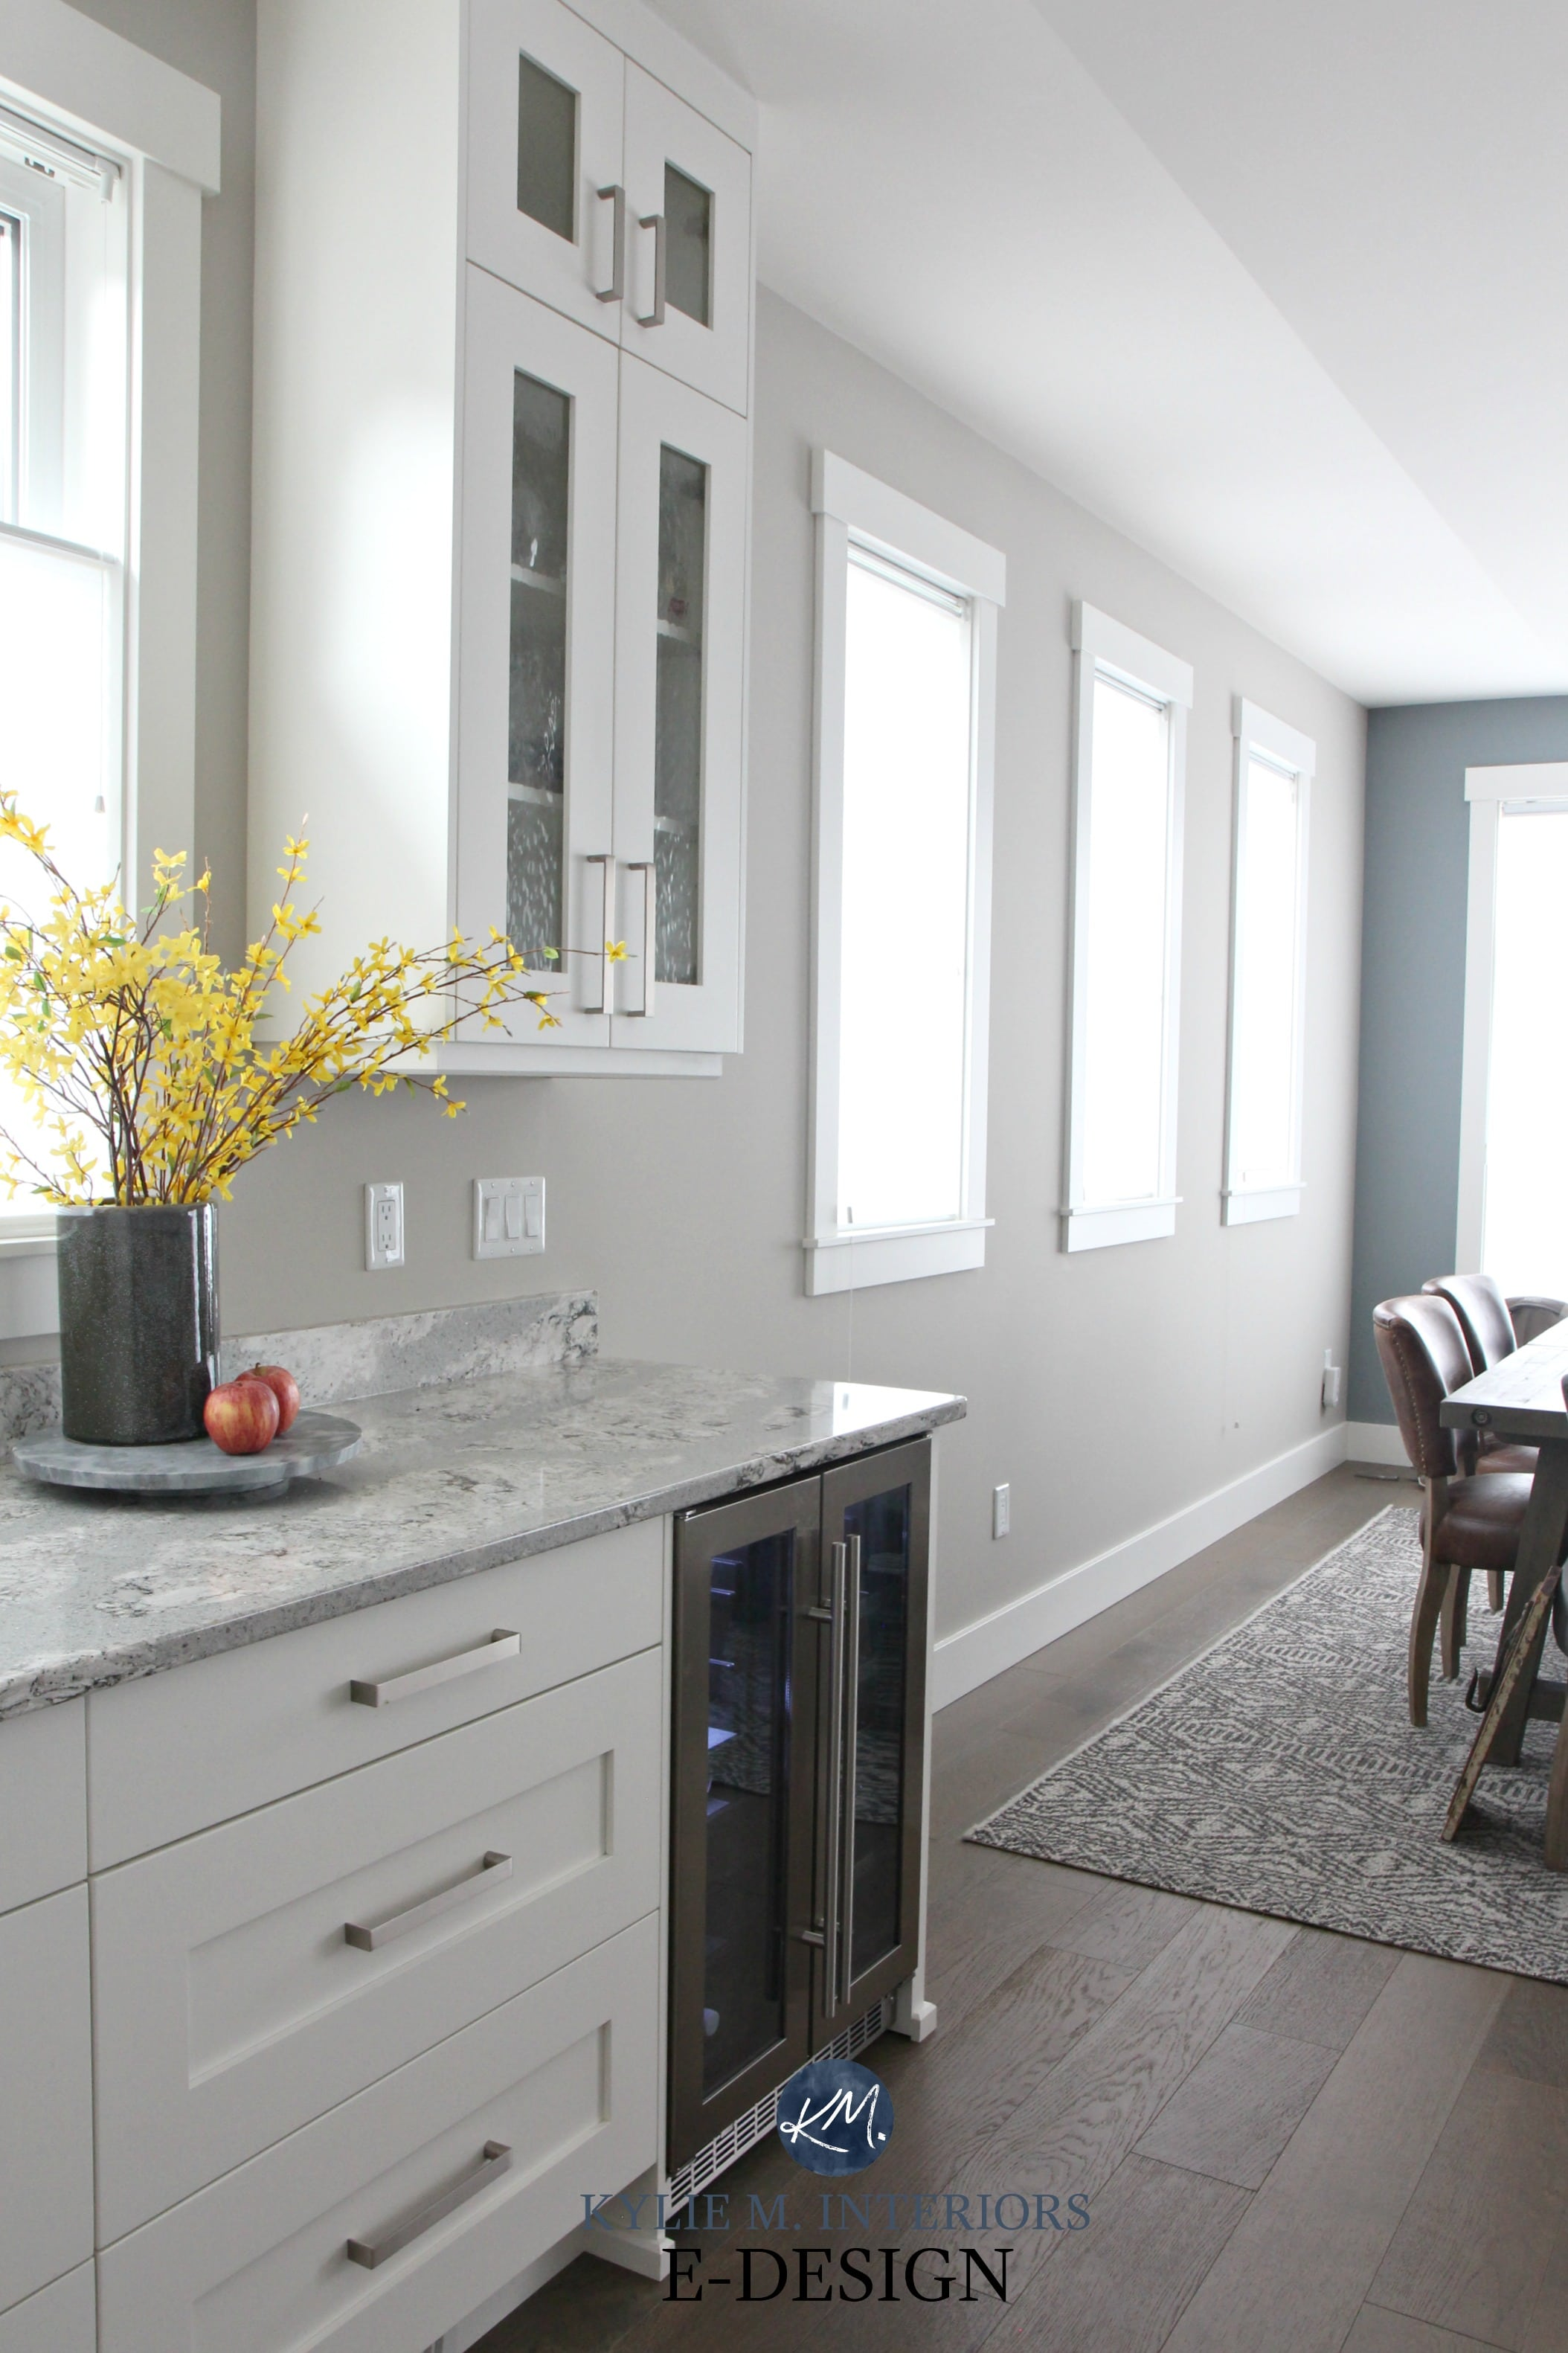 Sherwin Williams Collonade Gray In North Facing Kitchen With Alabaster Cabinets Summerhill